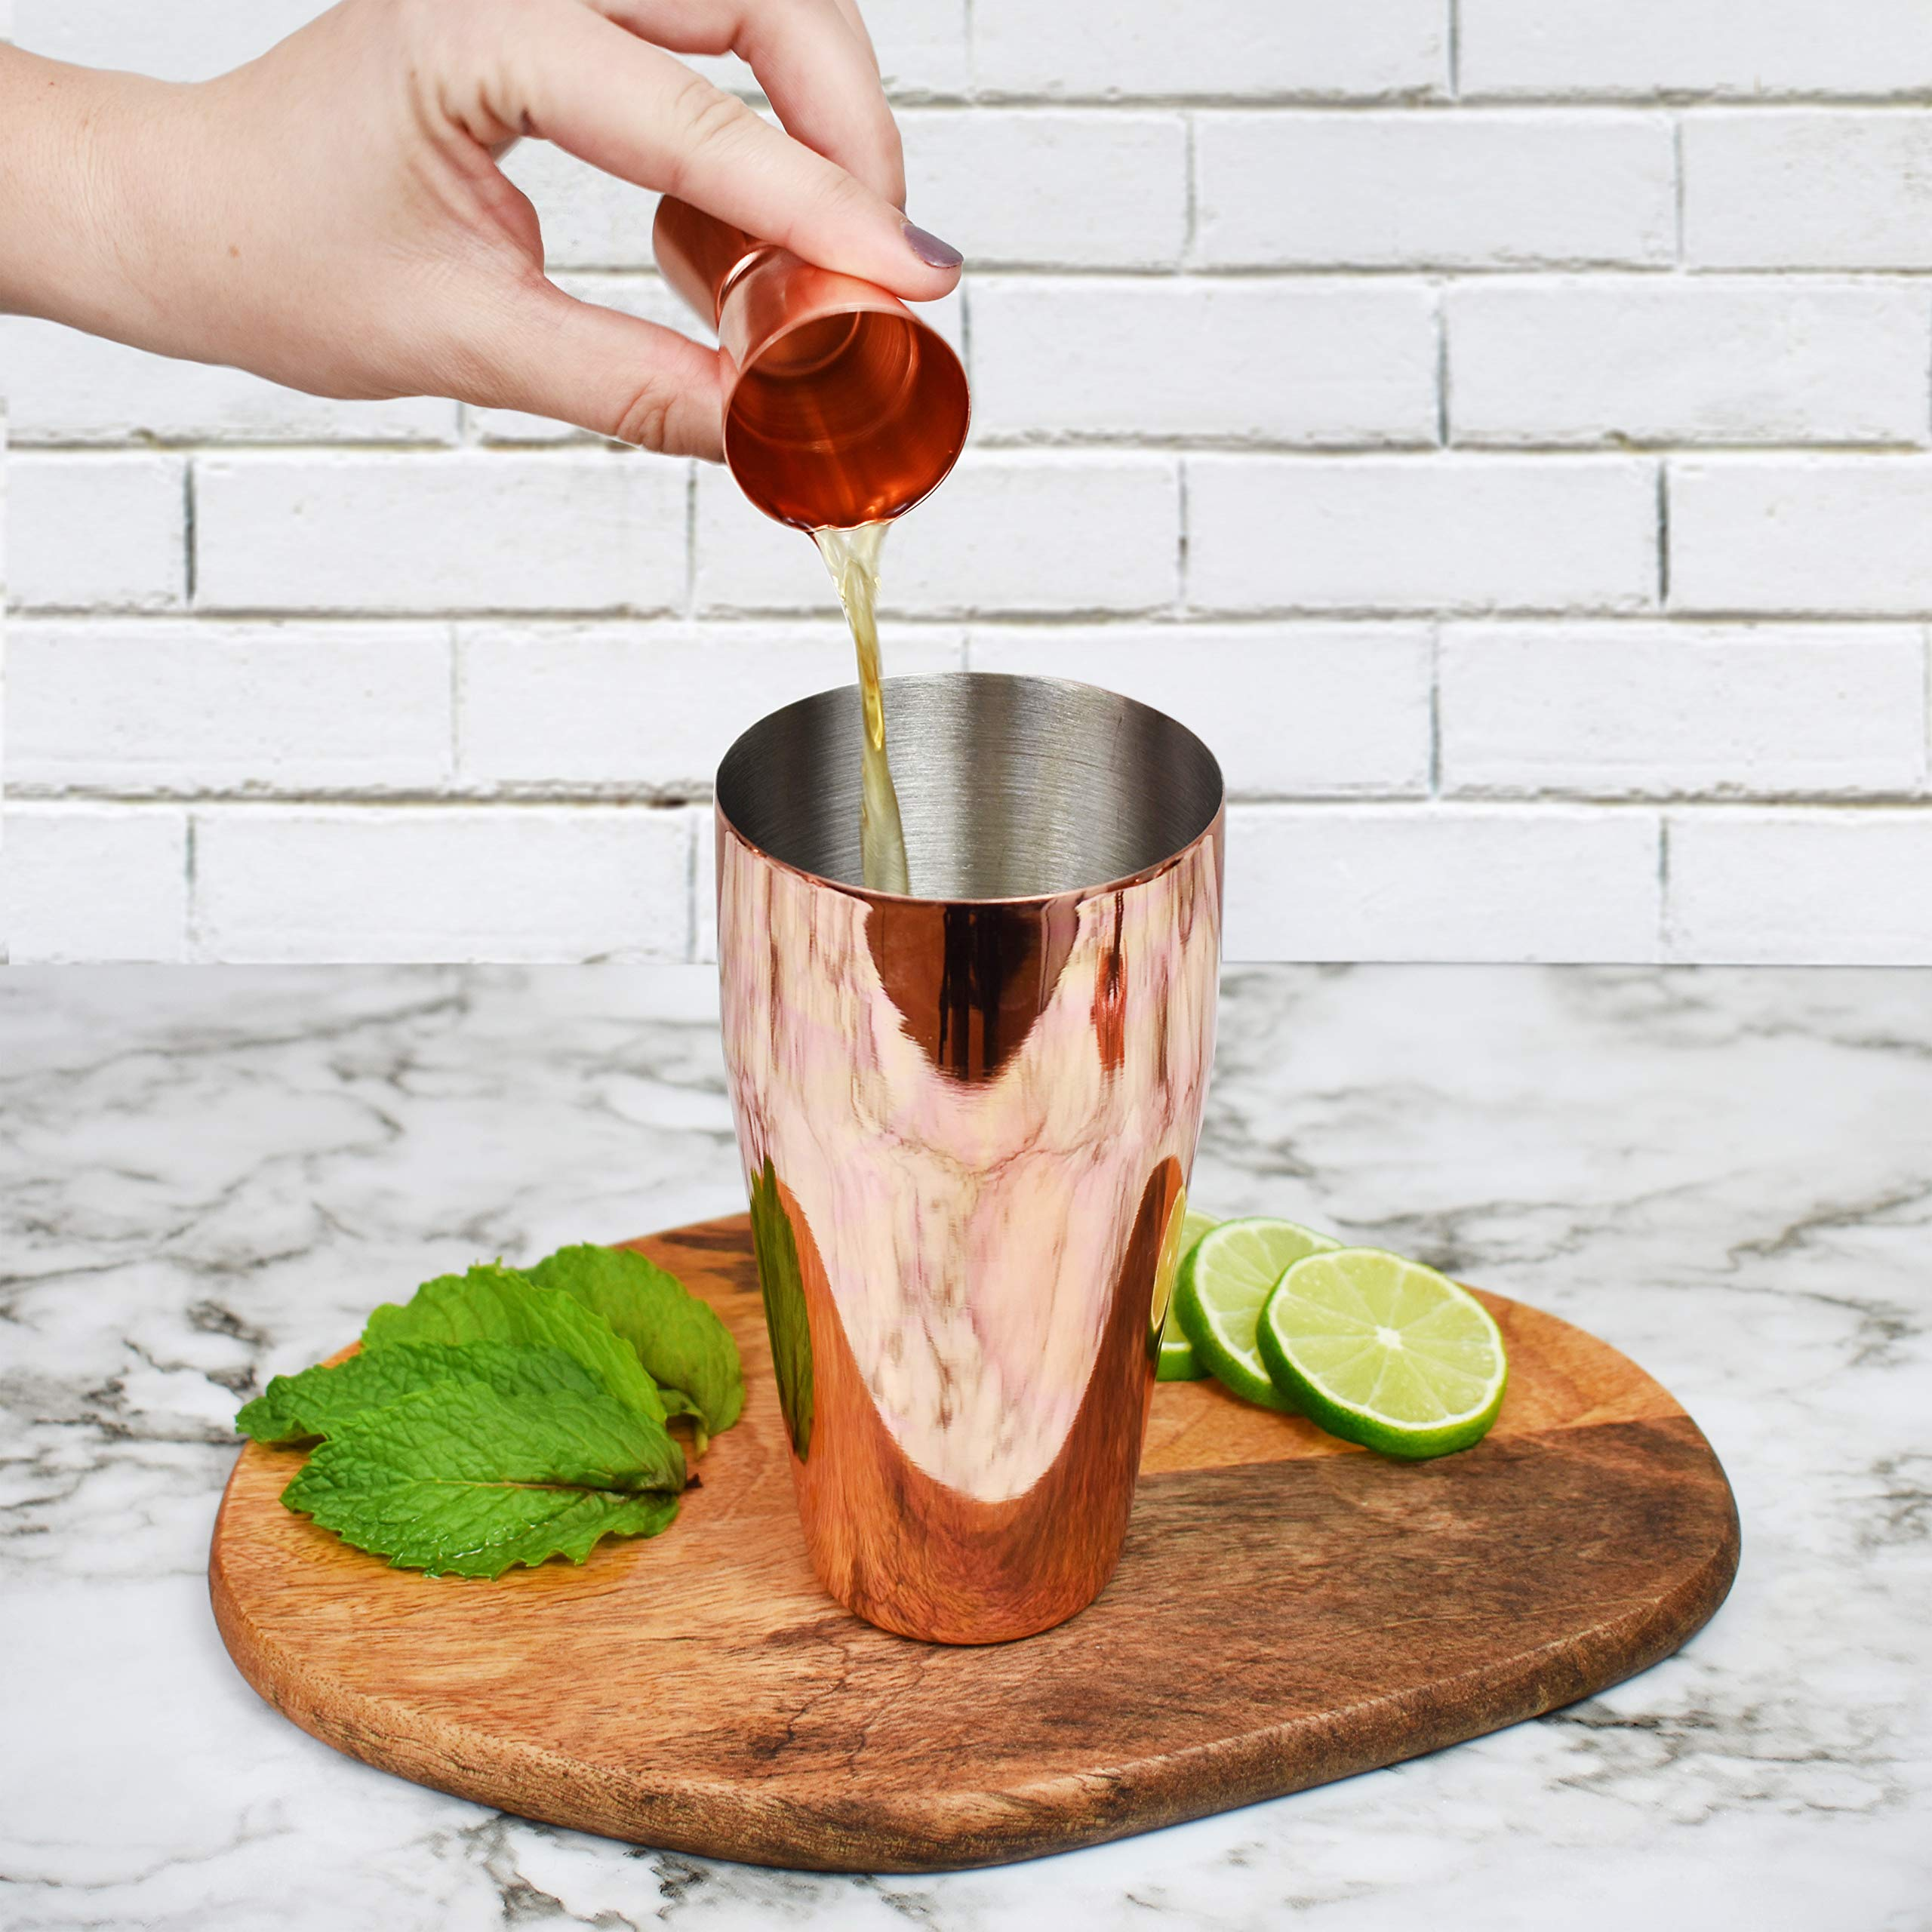 Bartender Kit Copper 11 Piece - Copper Parisian Cocktail Mixology Set - Rose Gold Shaker With Muddler, Pourers, Strainer & Twisted Bar Spoon by J&A Homes (Image #5)